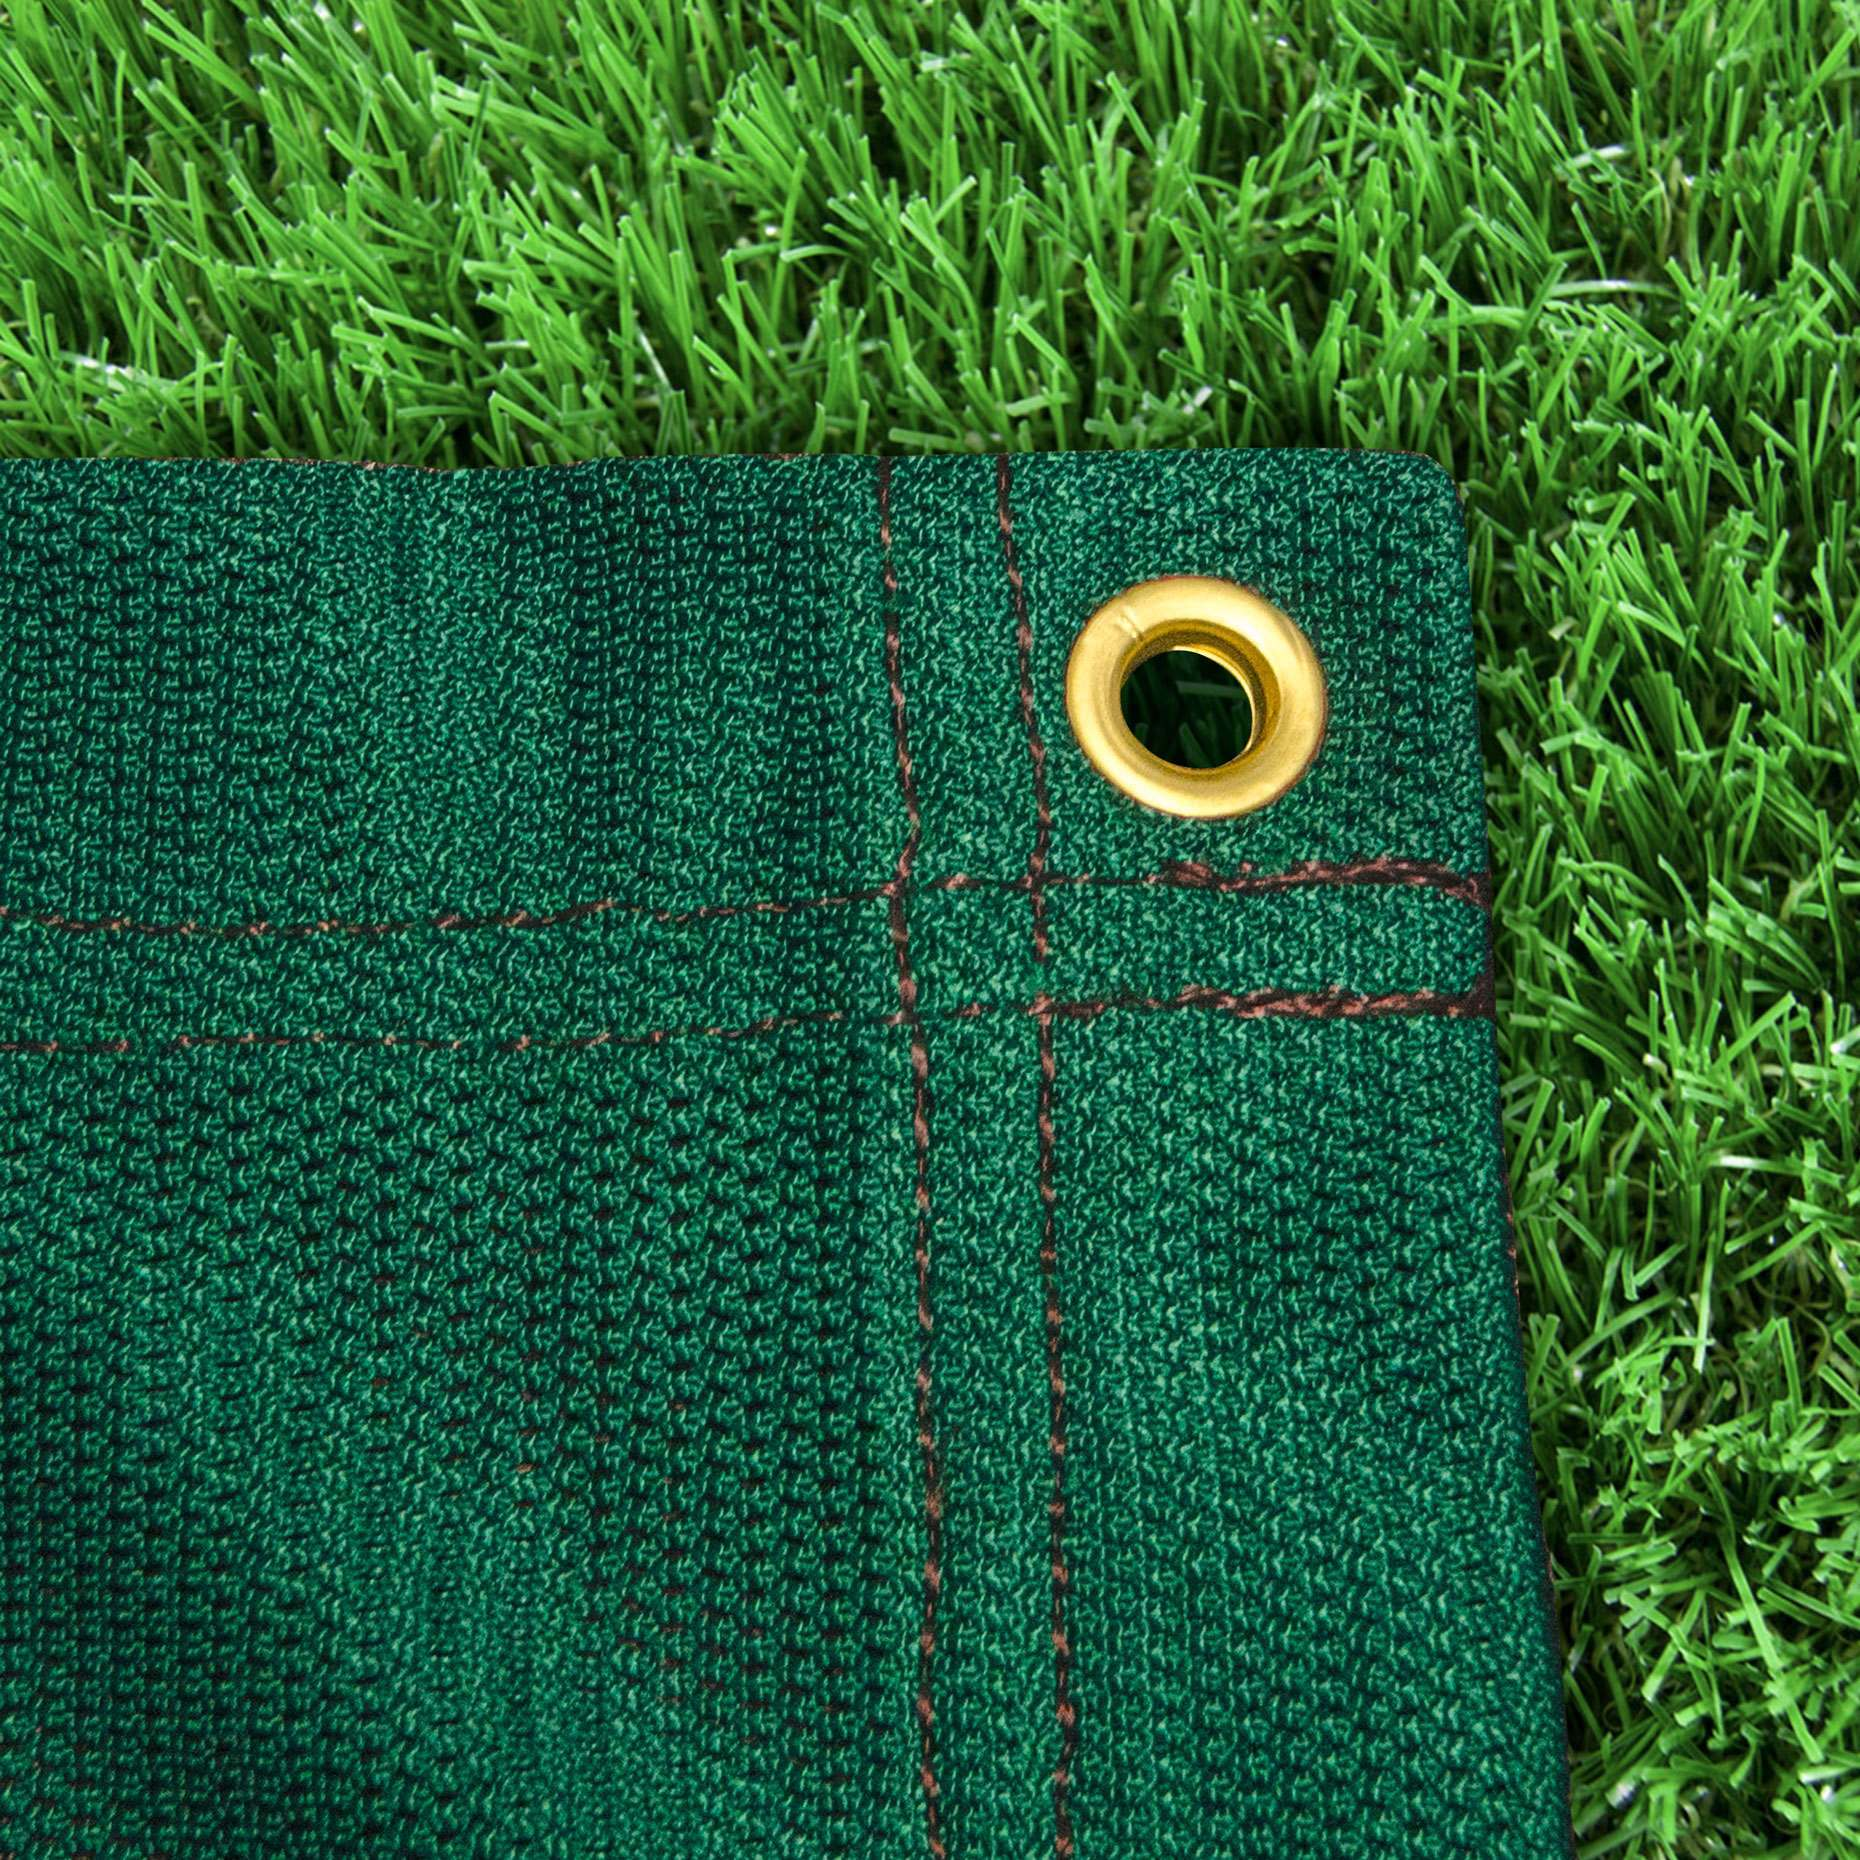 Corrosion Resistant Brass Eyelets For Arrow Stopping Nets